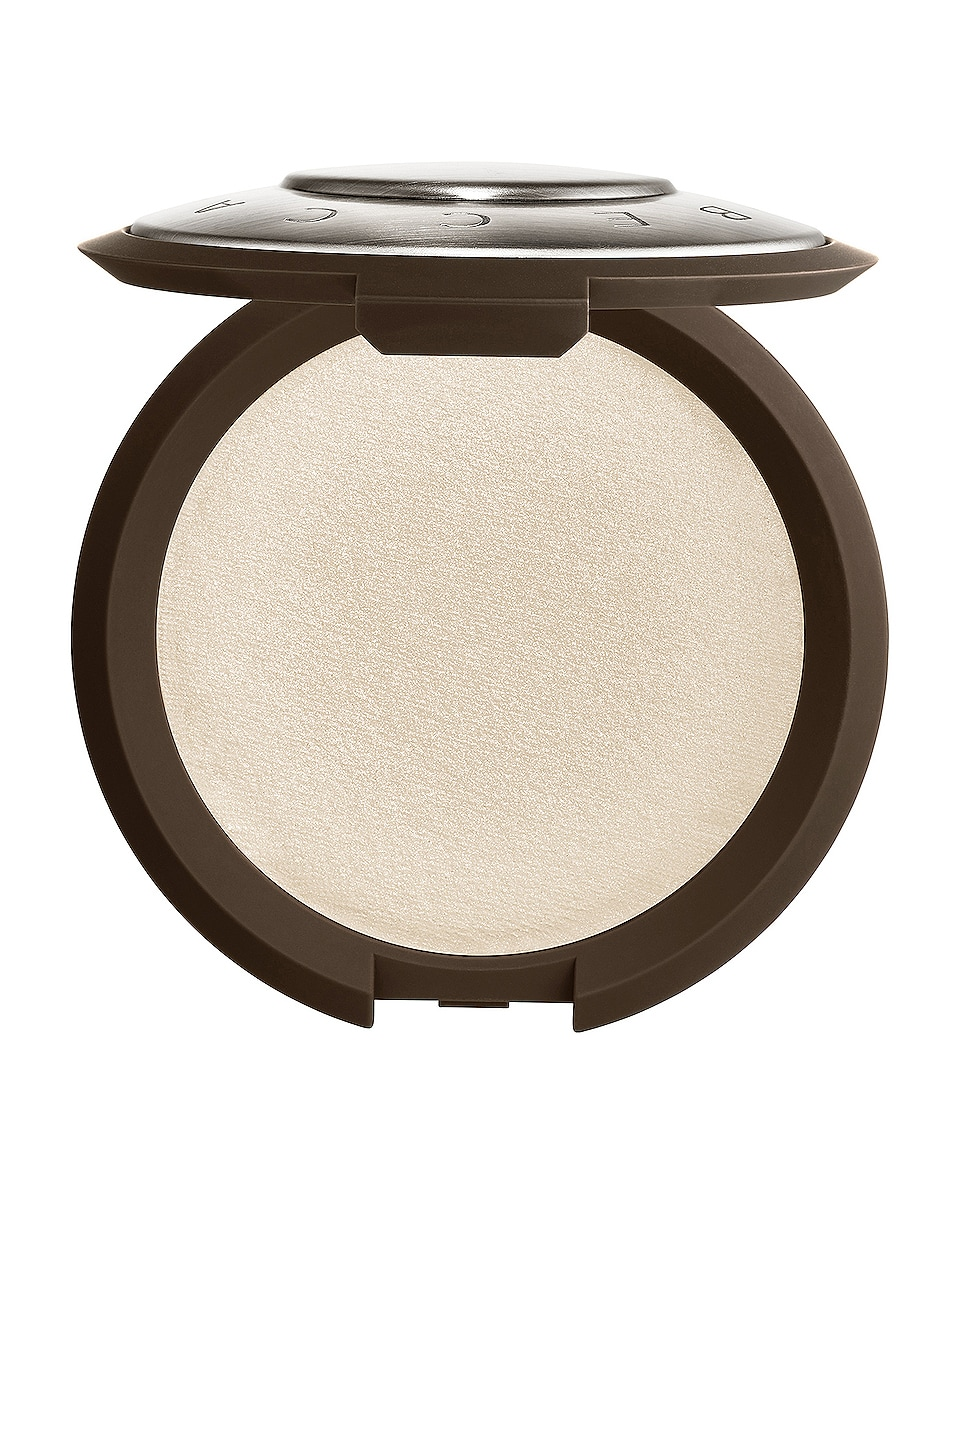 BECCA Shimmering Skin Perfector Pressed in Pearl